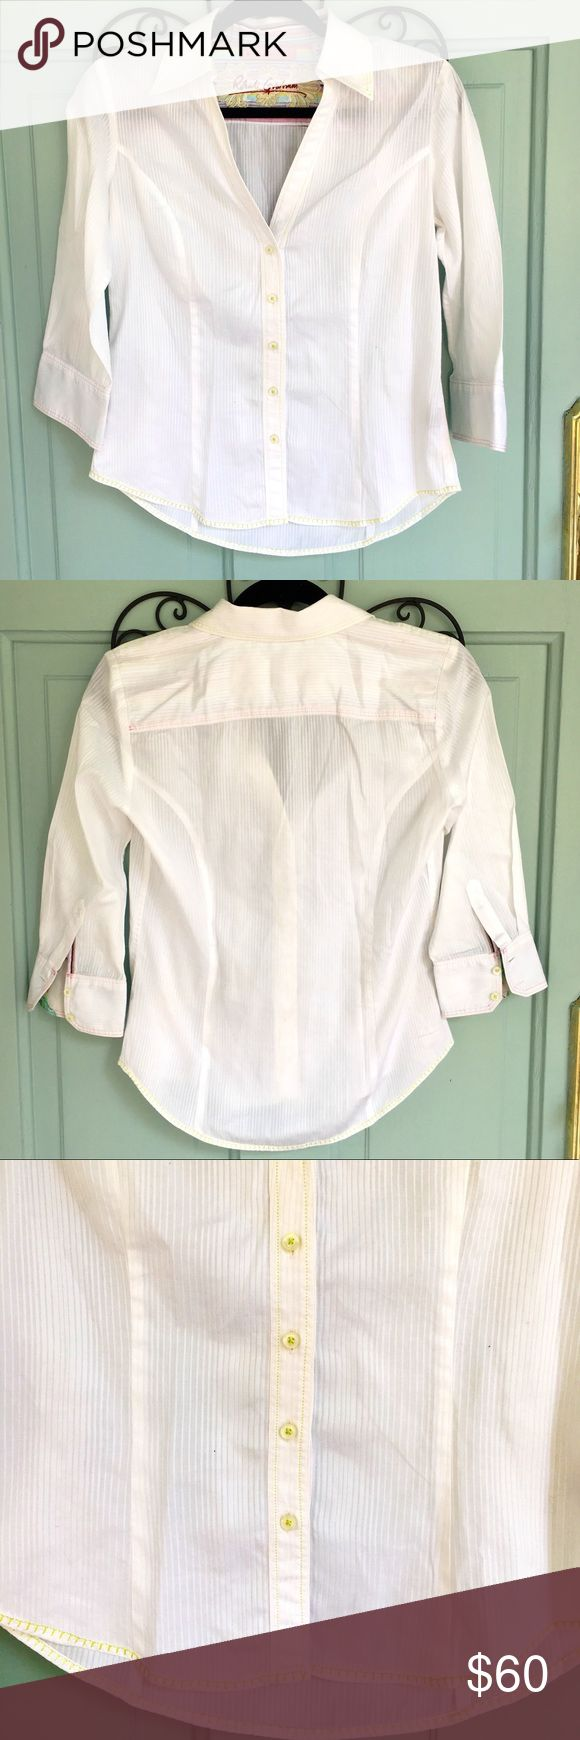 Robert Graham White Button Up with Embroidery Like new condition. 3/4 sleeves. Green and pink stitching. Embroidery on inside back. Adorable on. Make me an offer:) Robert Graham Tops Button Down Shirts